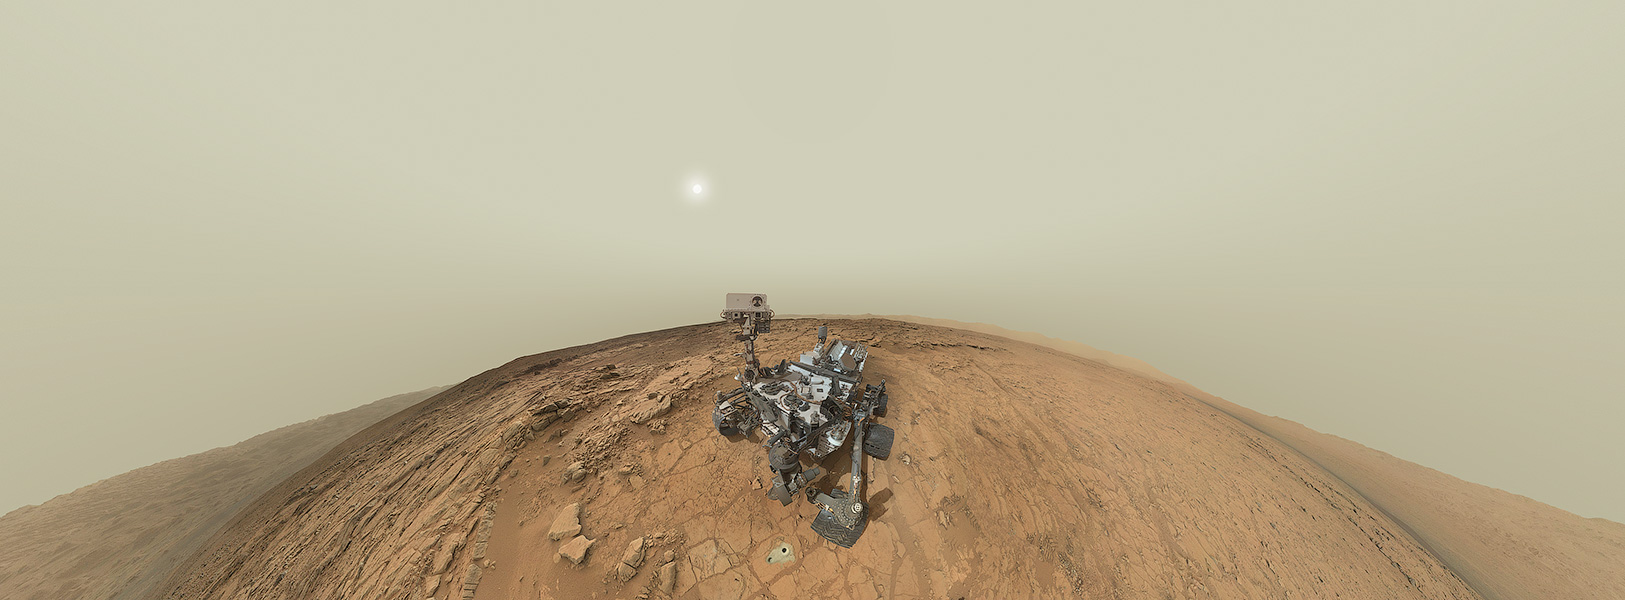 Autoportrait panoramique de Curiosity